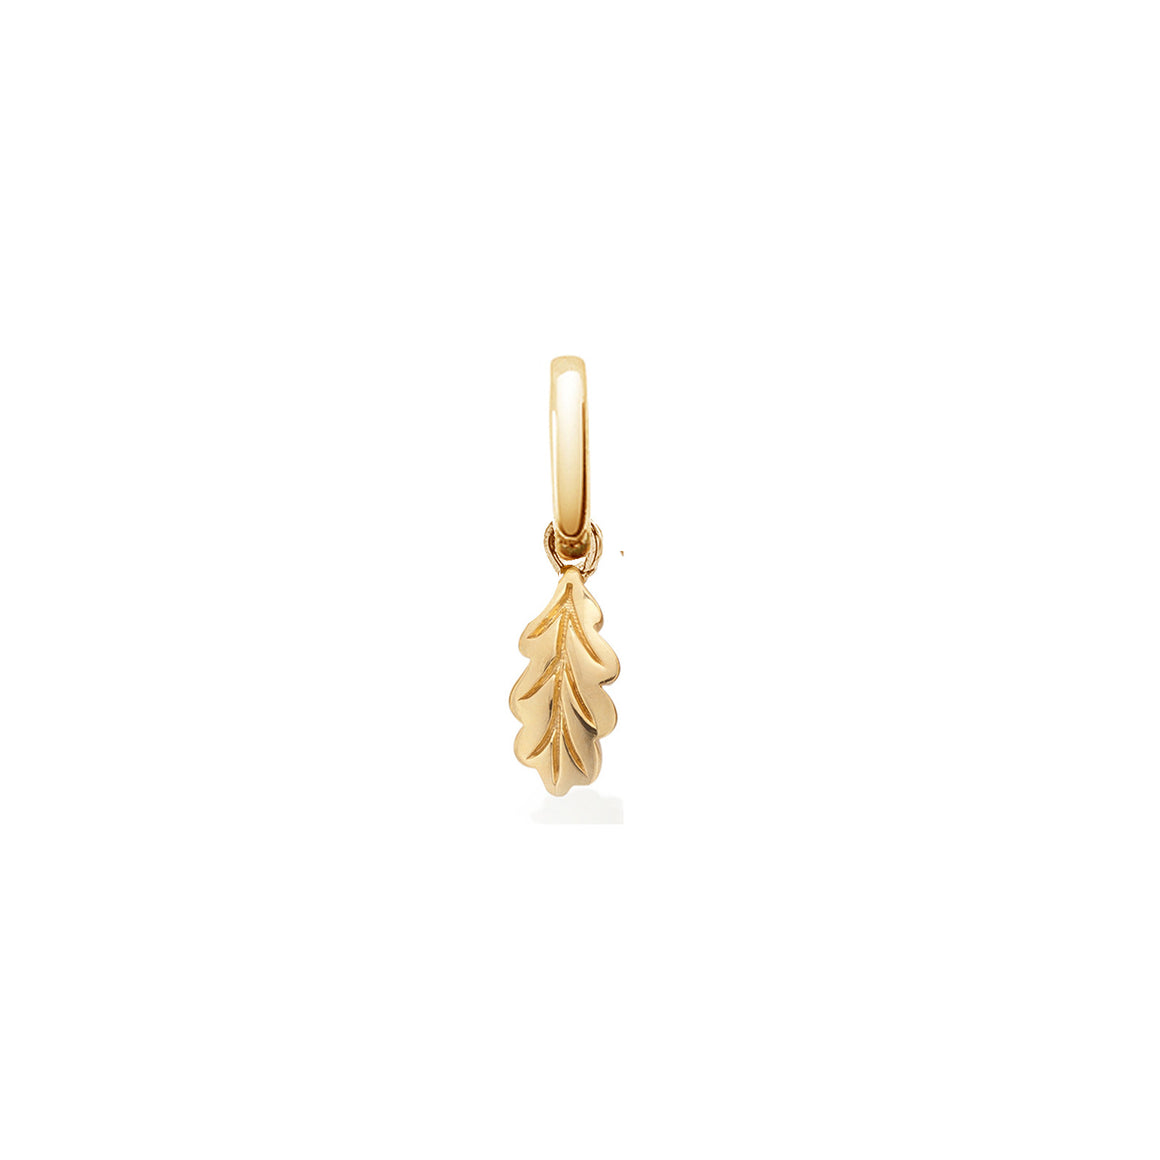 Tiny Giant Leaf Pendant Charm, Yellow Gold